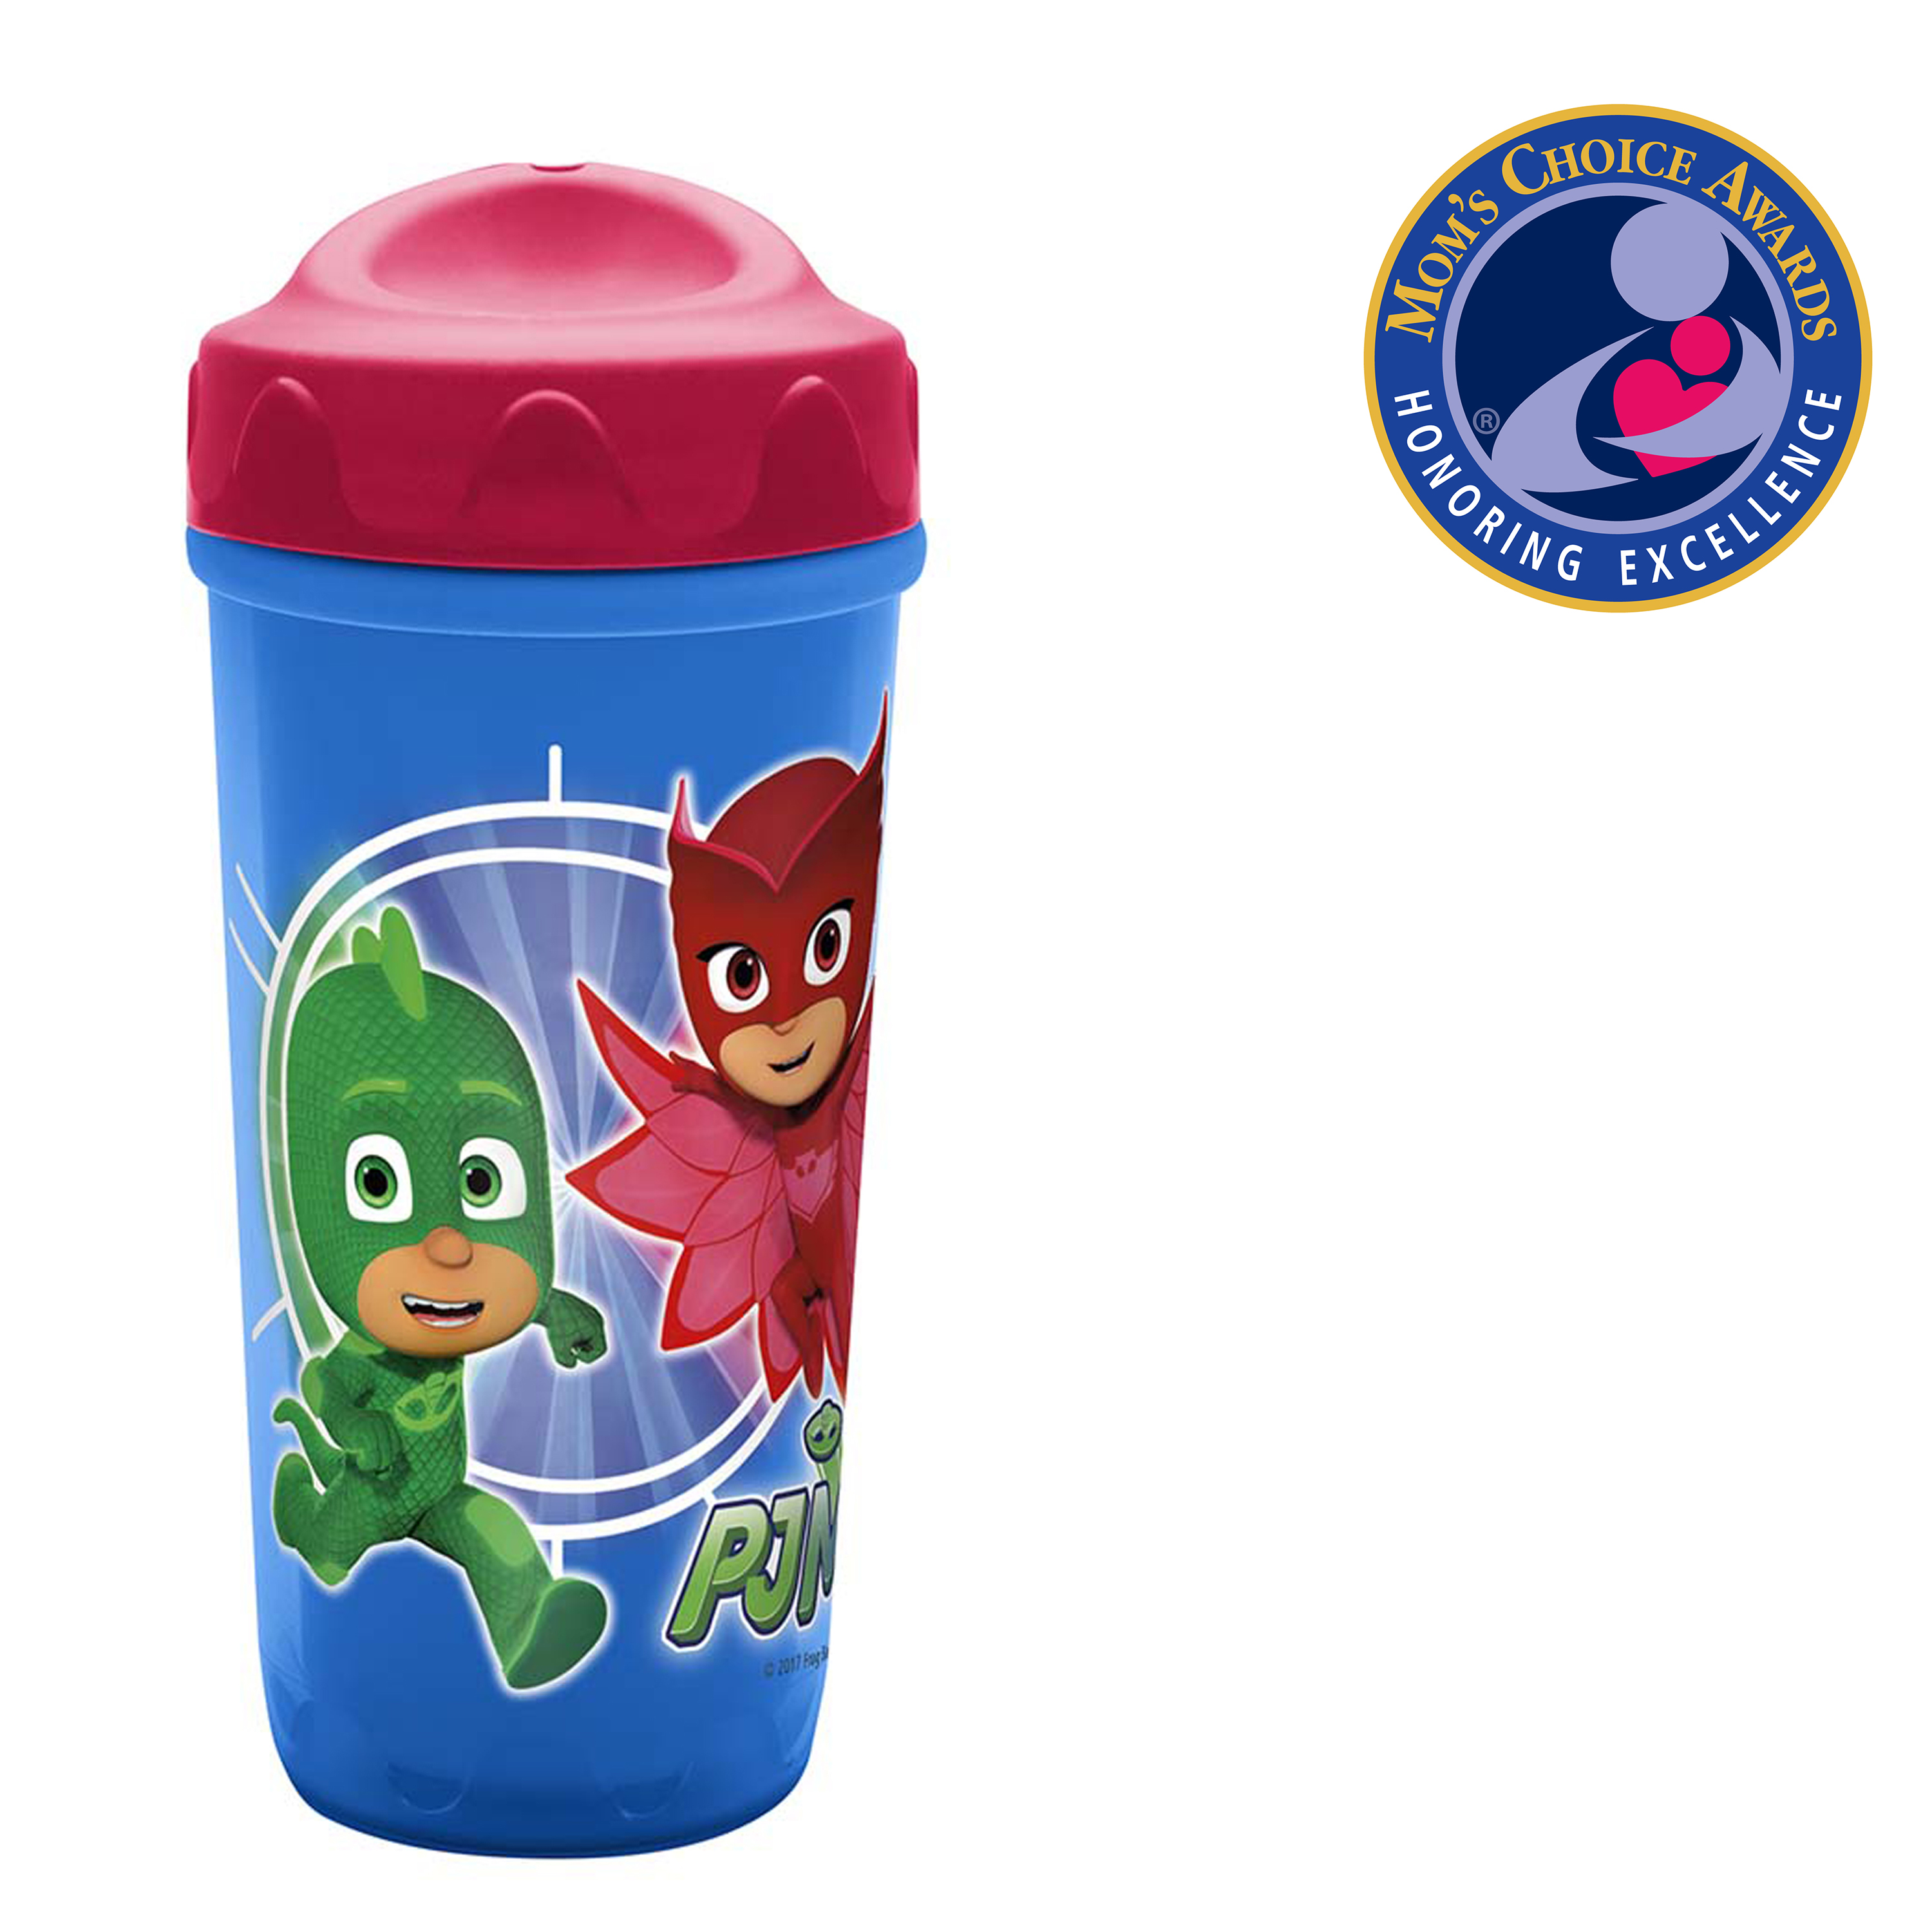 PJ Masks 8.7 ounce Sippy Cup, Catboy, Owlette & Gekko, 2-piece set slideshow image 2